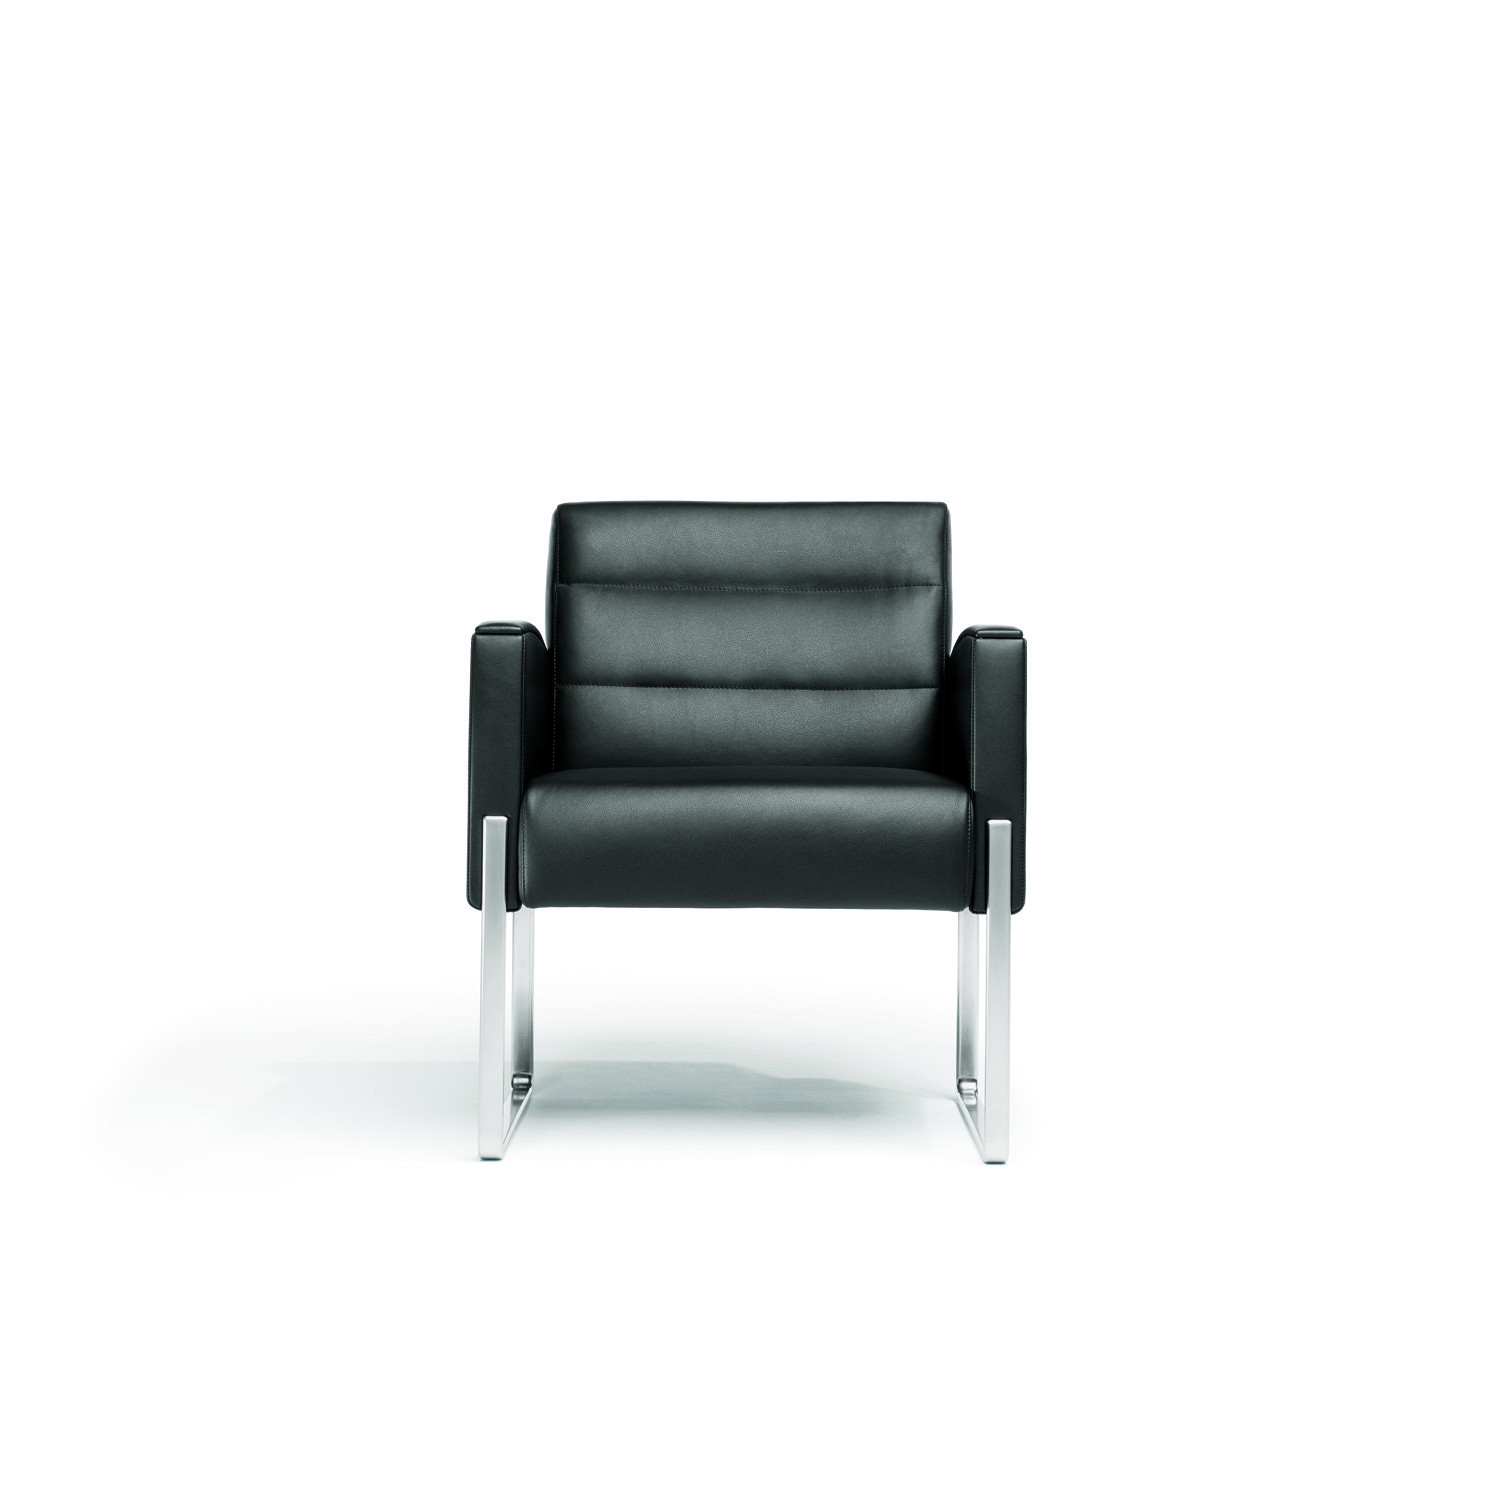 5070 Vega Armchair upholstered in leather